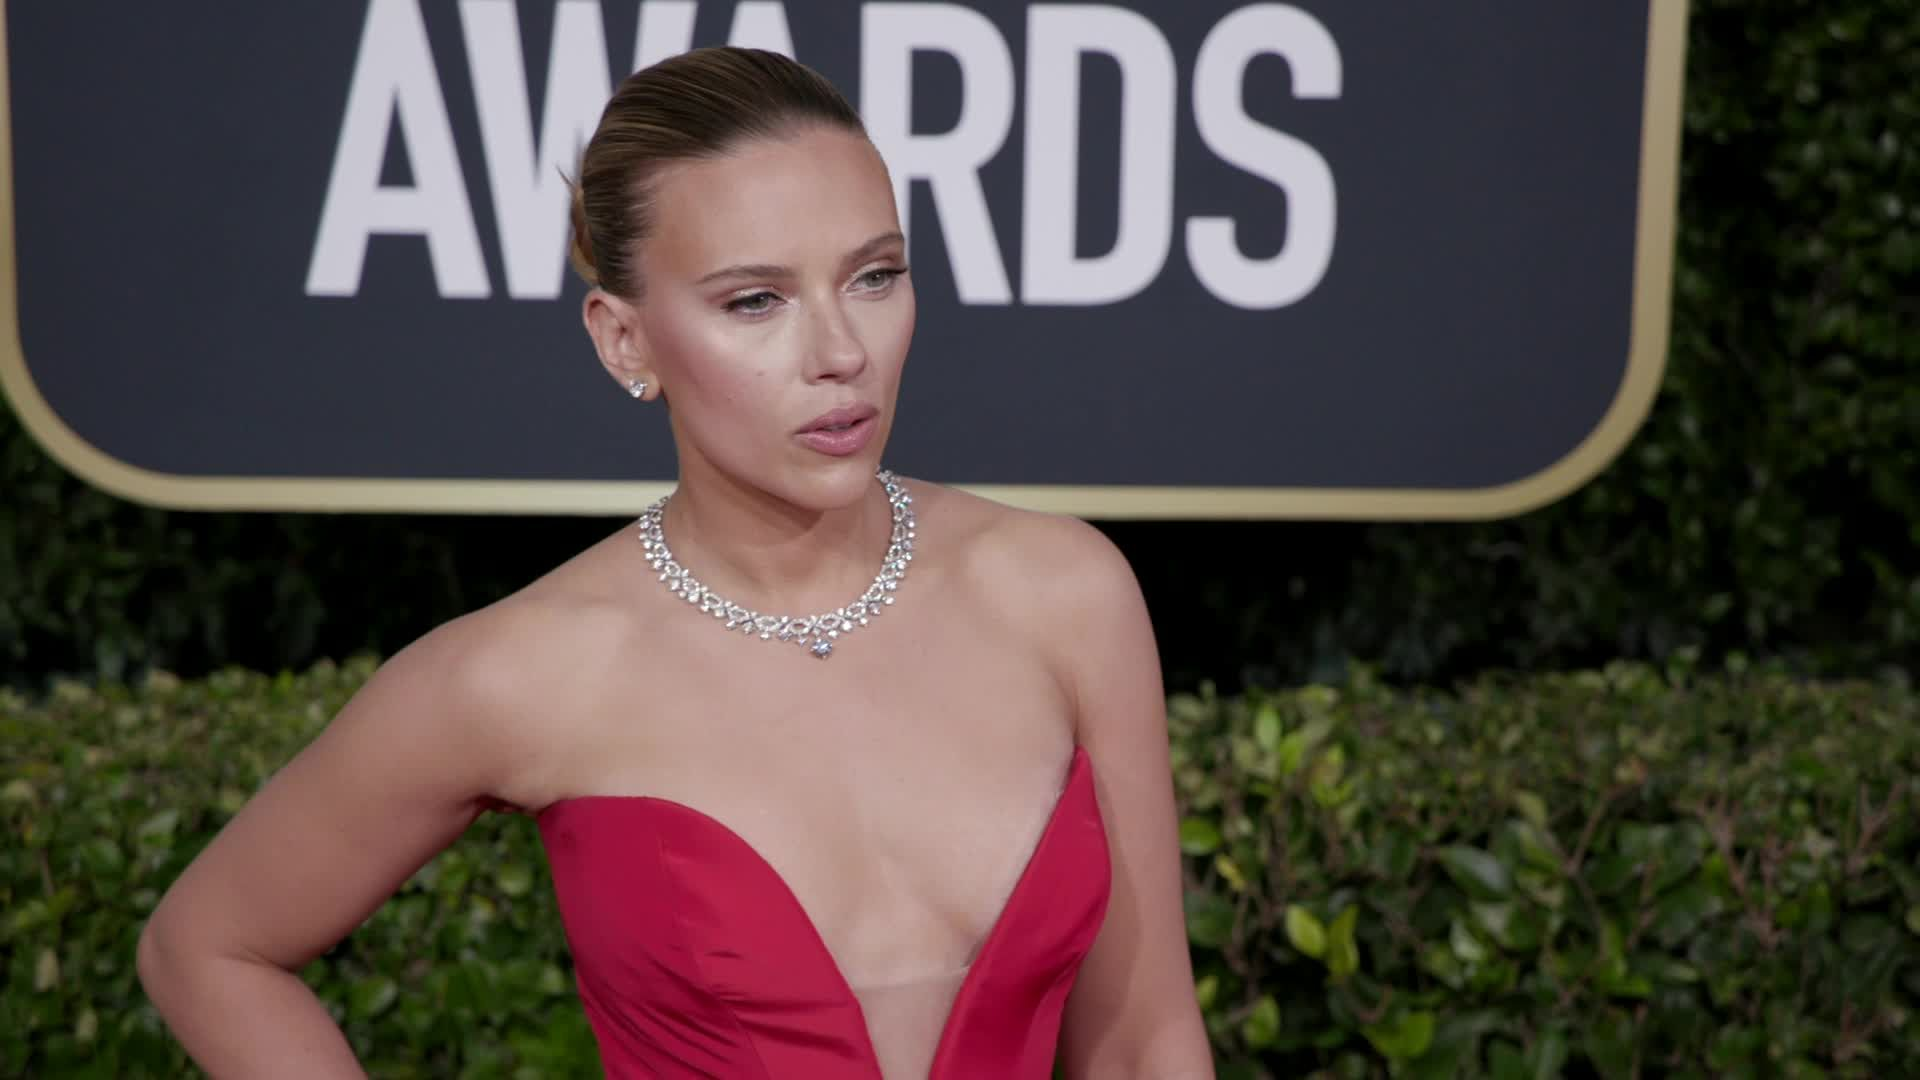 Chris Evans Jumped To Scarlett Johansson's Rescue As She Struggled With Vera Wang Dress At Golden Globes